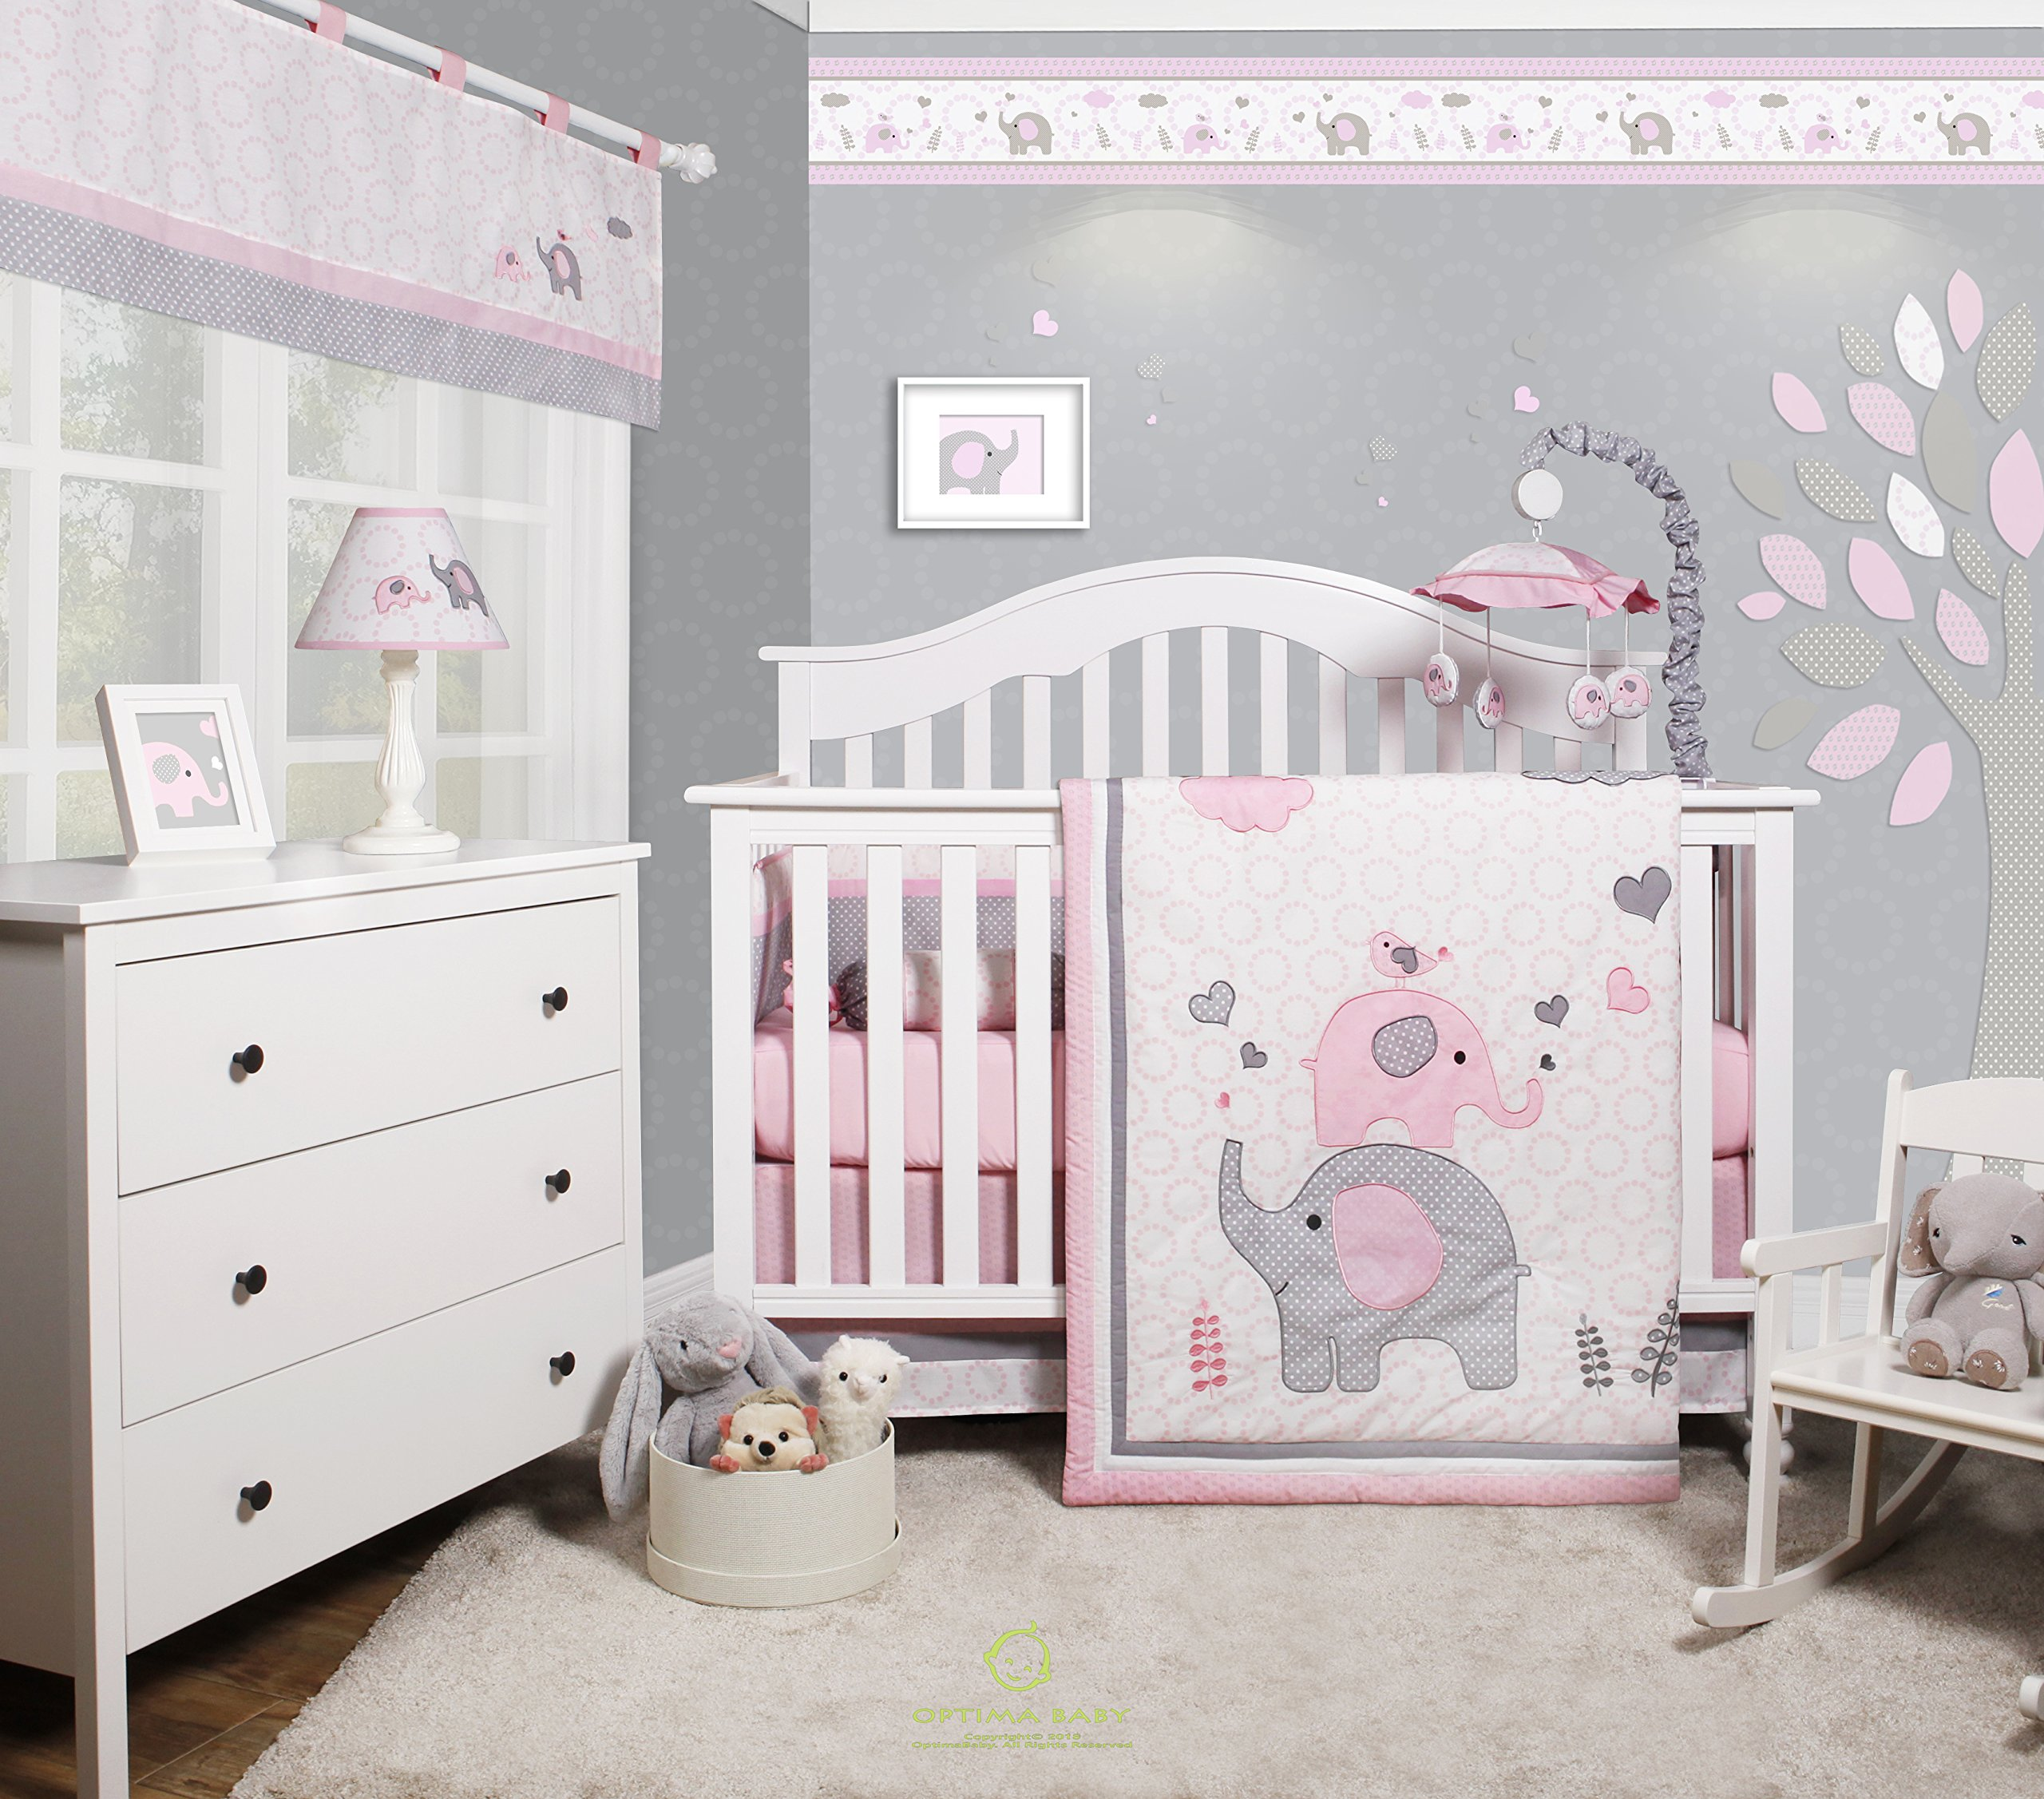 Pink Baby Girl Nursery: Amazon.com : Just Born Musical Mobile, Grey/Pink Elephants